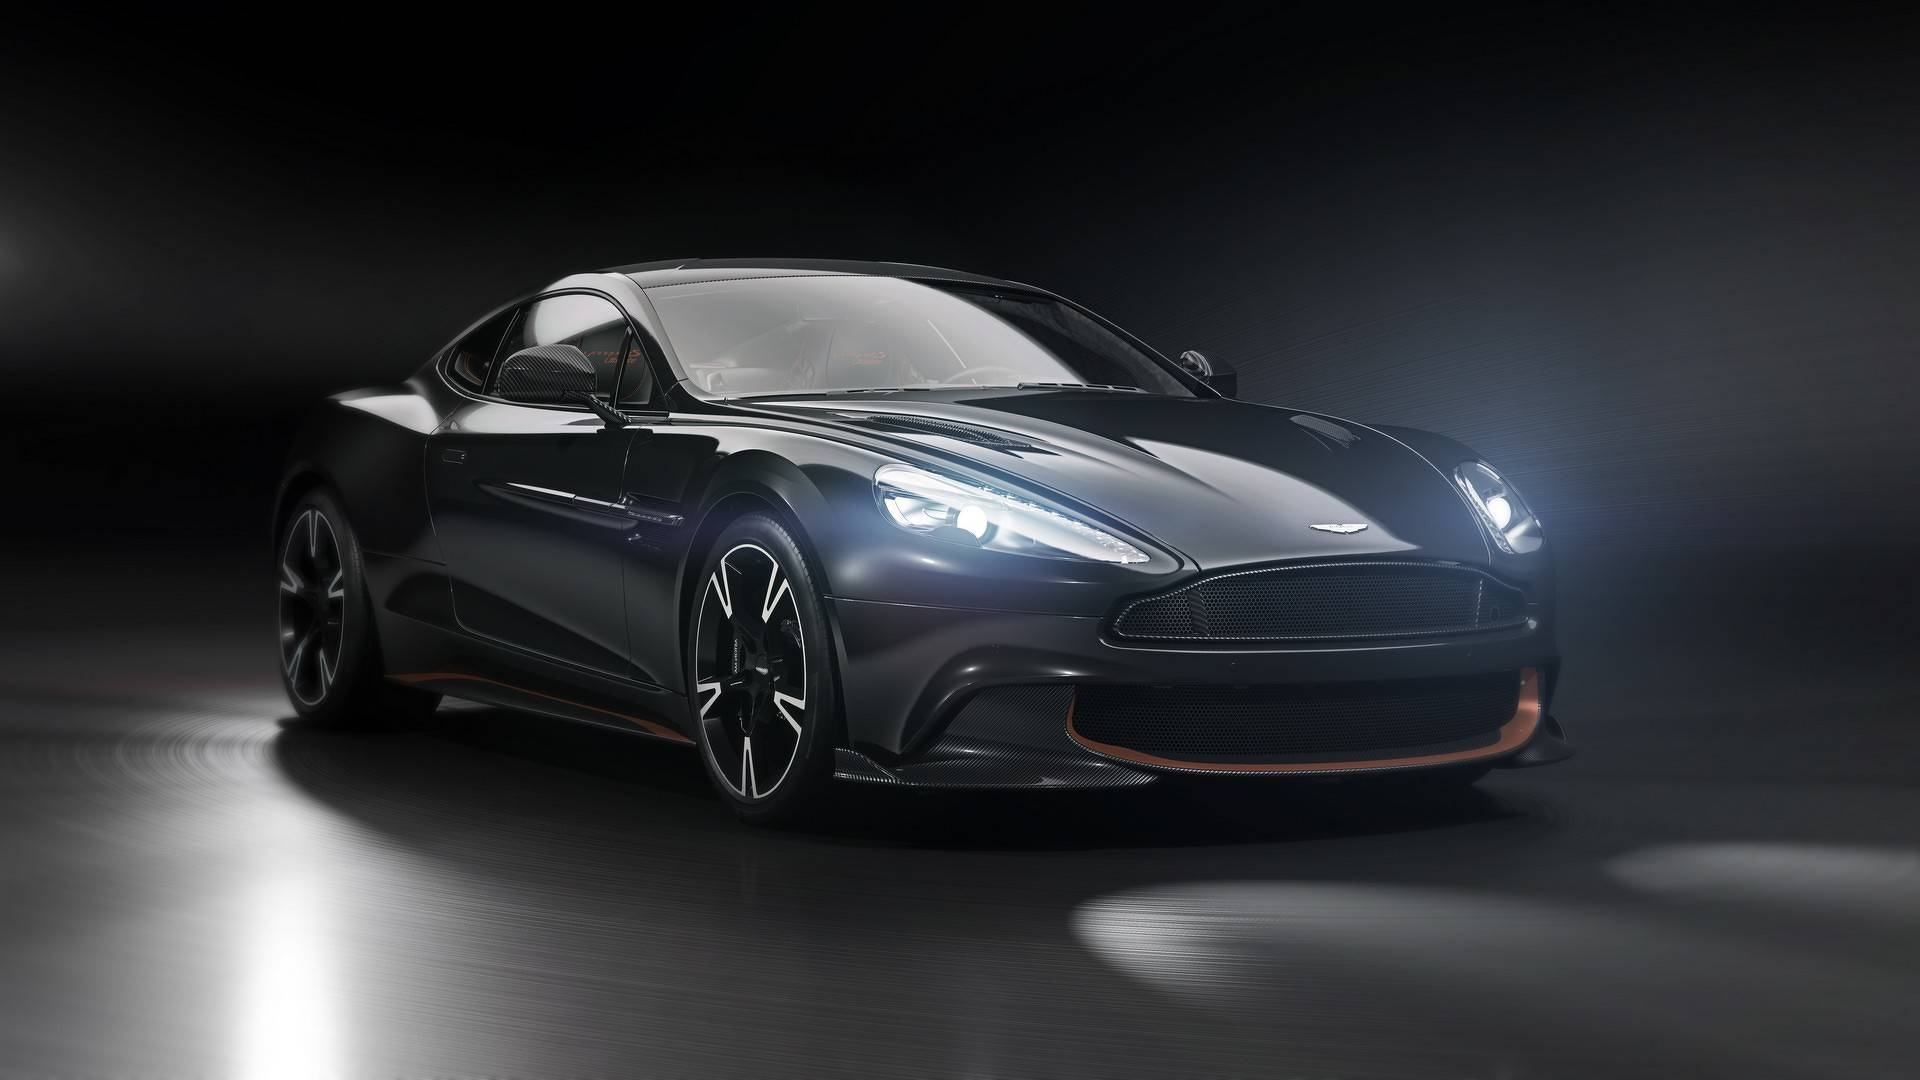 Who Would Buy Aston Martin Vanquish Drawings For 20 Million